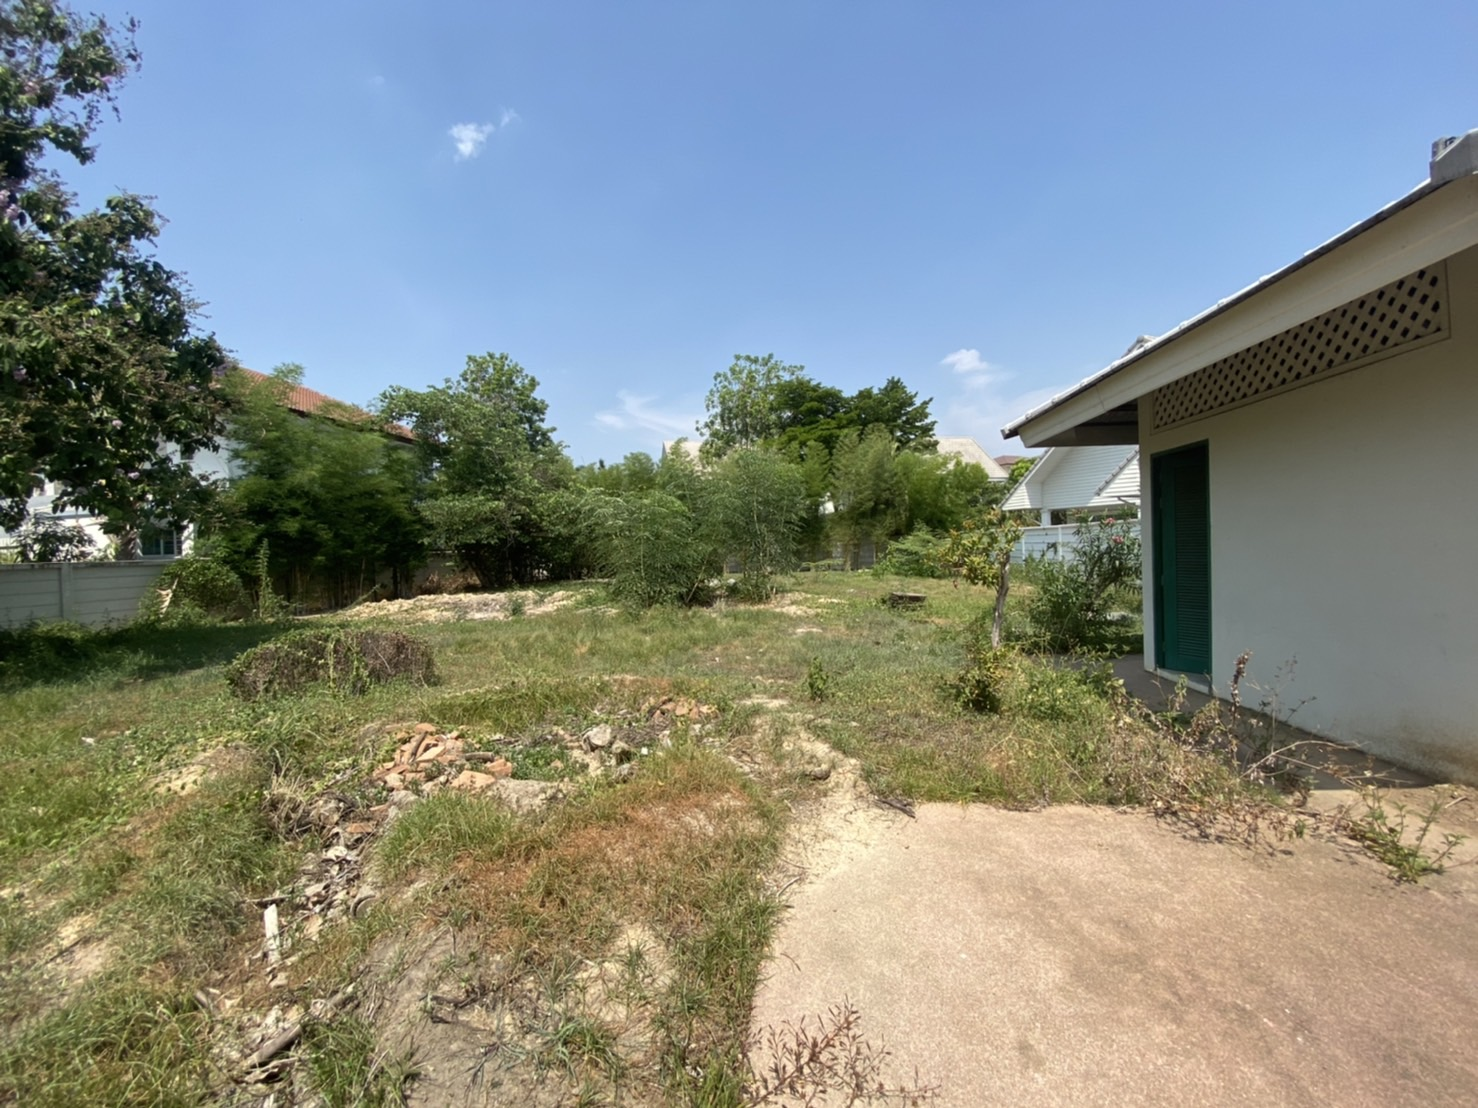 Land ready to build on for SALE in The Urban 1, Thasala, Chiang Mai.